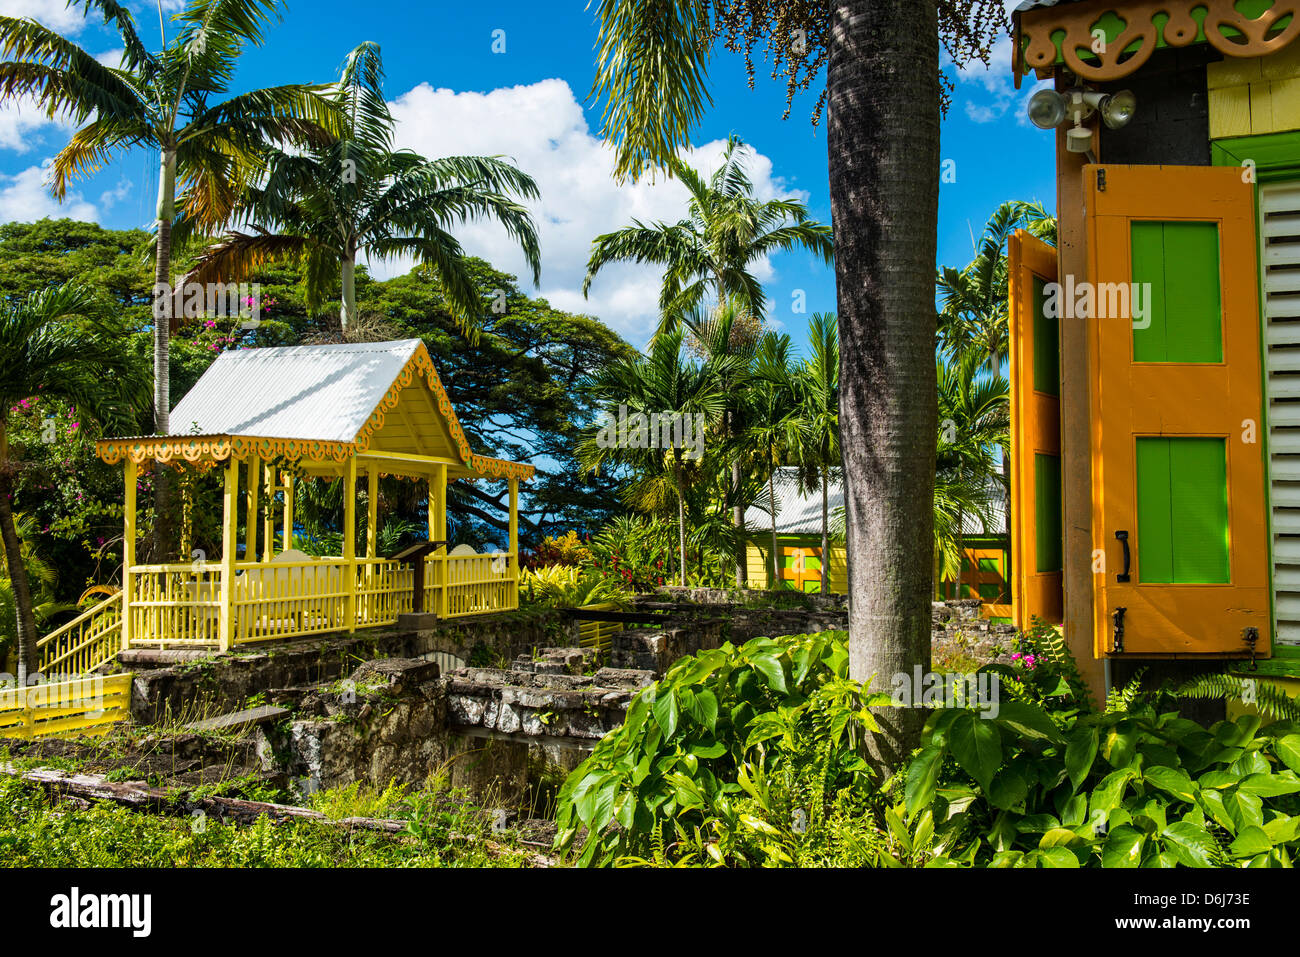 Romney Manor on St. Kitts, St. Kitts and Nevis, Leeward Islands, West Indies, Caribbean, Central America Stock Photo